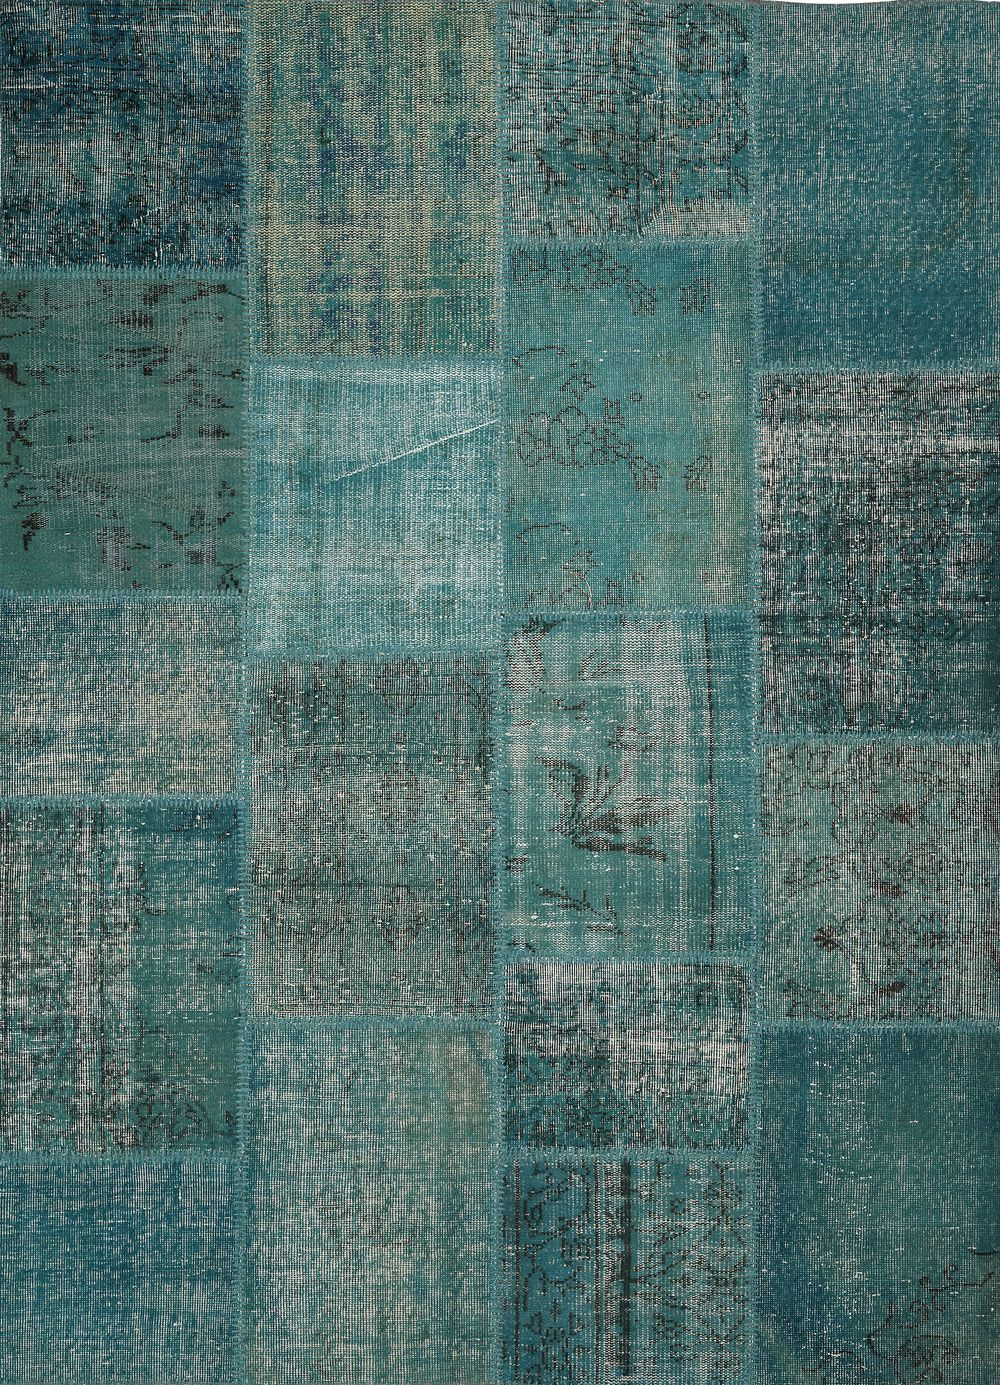 Steven And Chris Antique Kelim Patchwork Rug Collection From Turkey Love The Stunning Turquoise